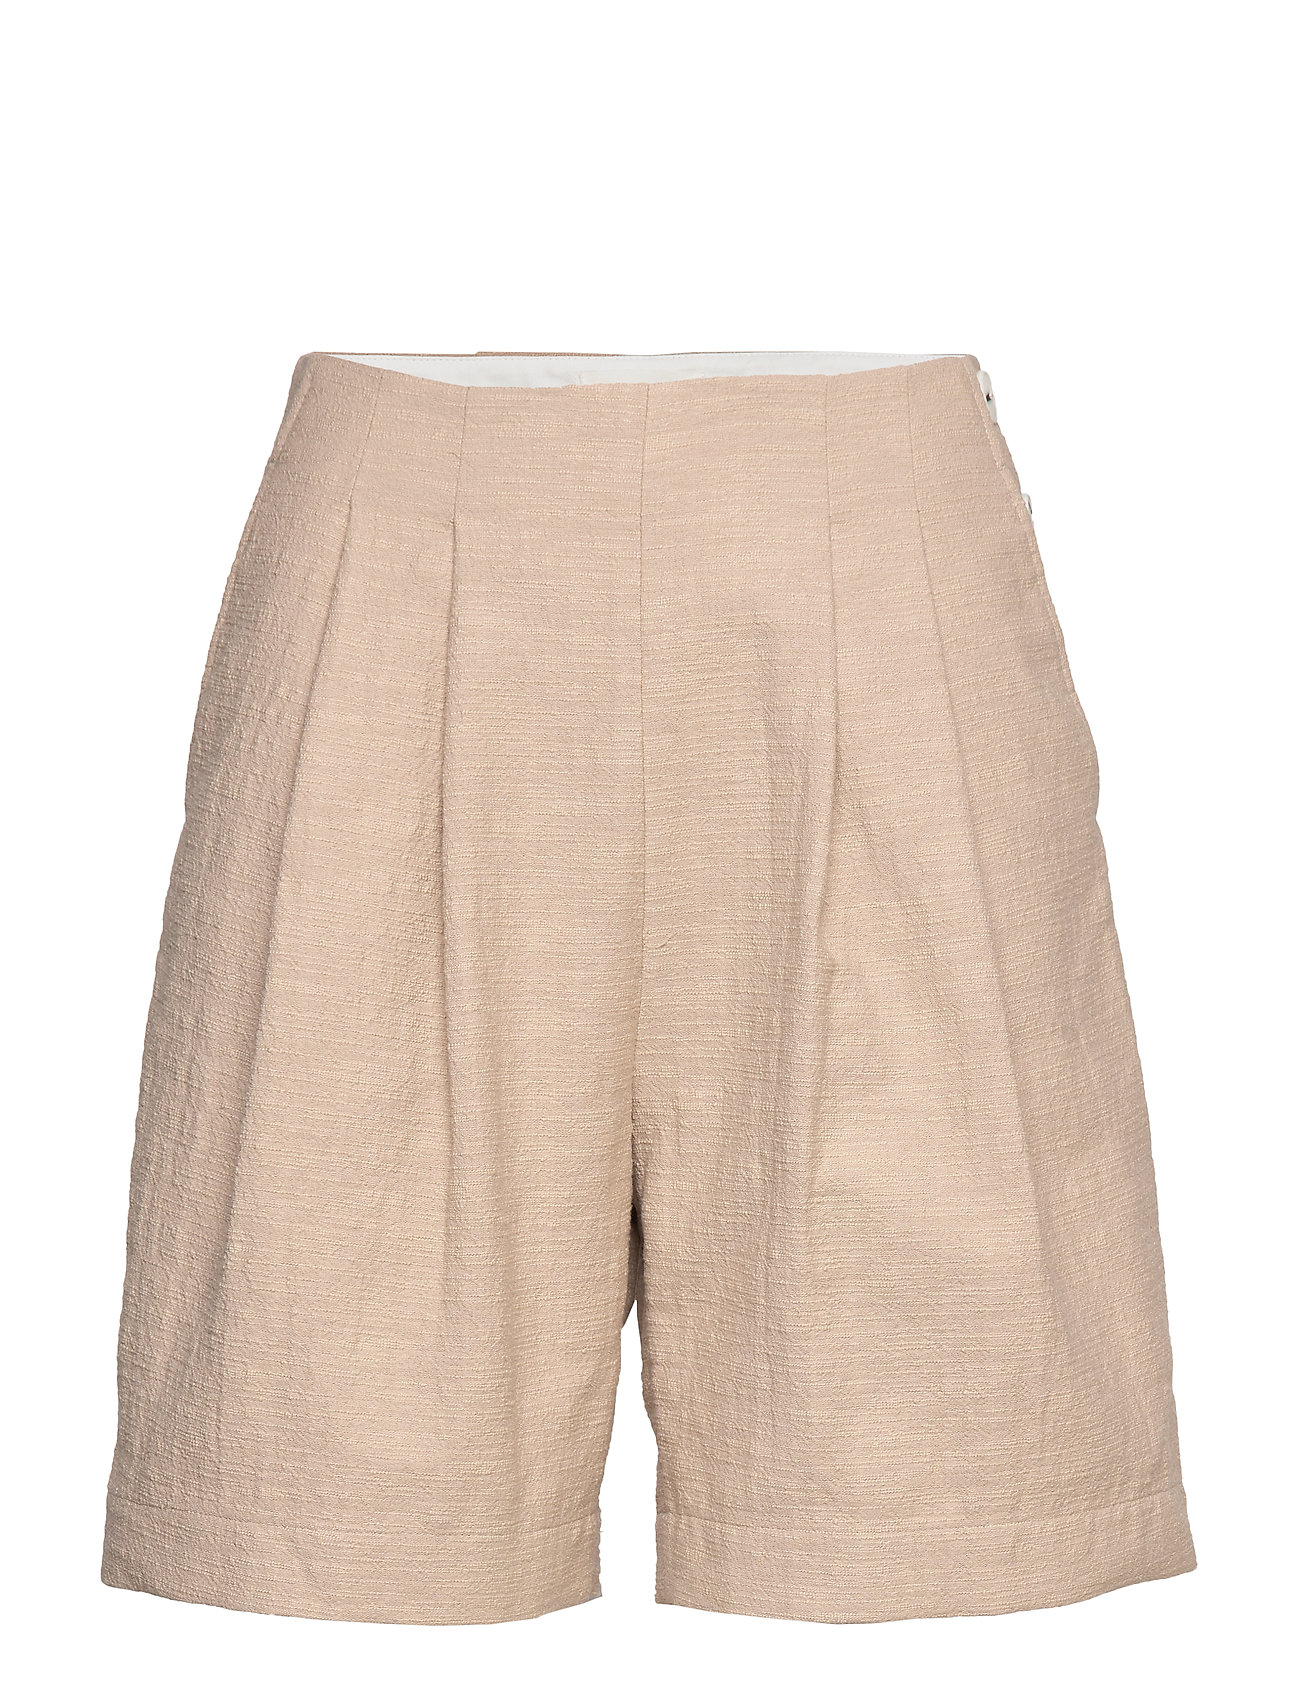 Wood Wood Birgit shorts - KHAKI